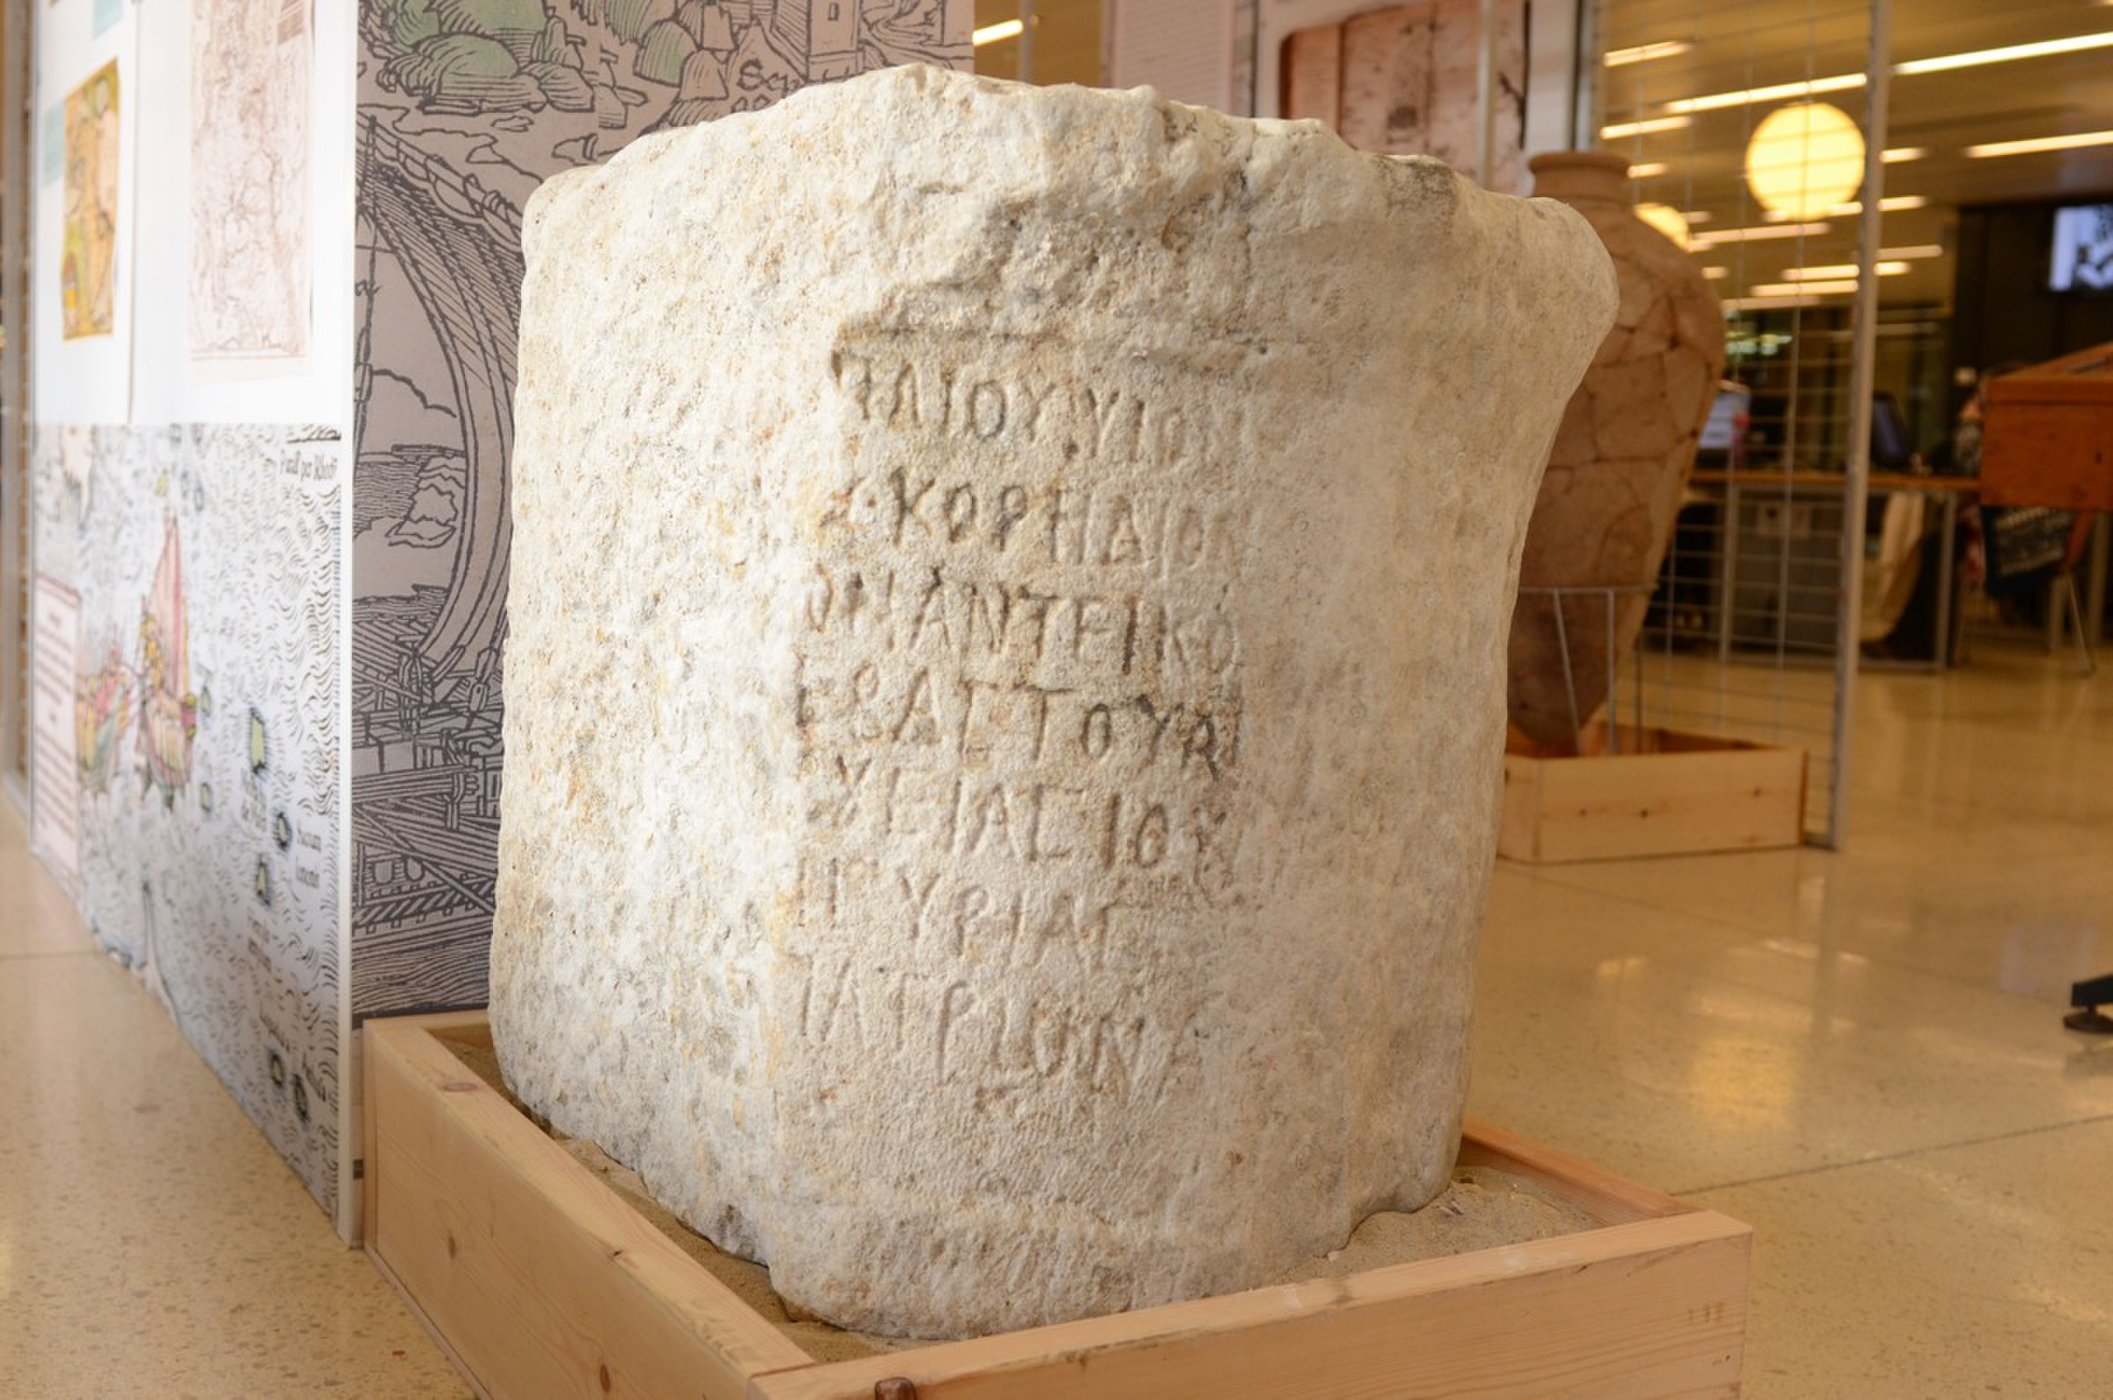 The stone slab is on display at the University of Haifa's library. Credit: University of Haifa